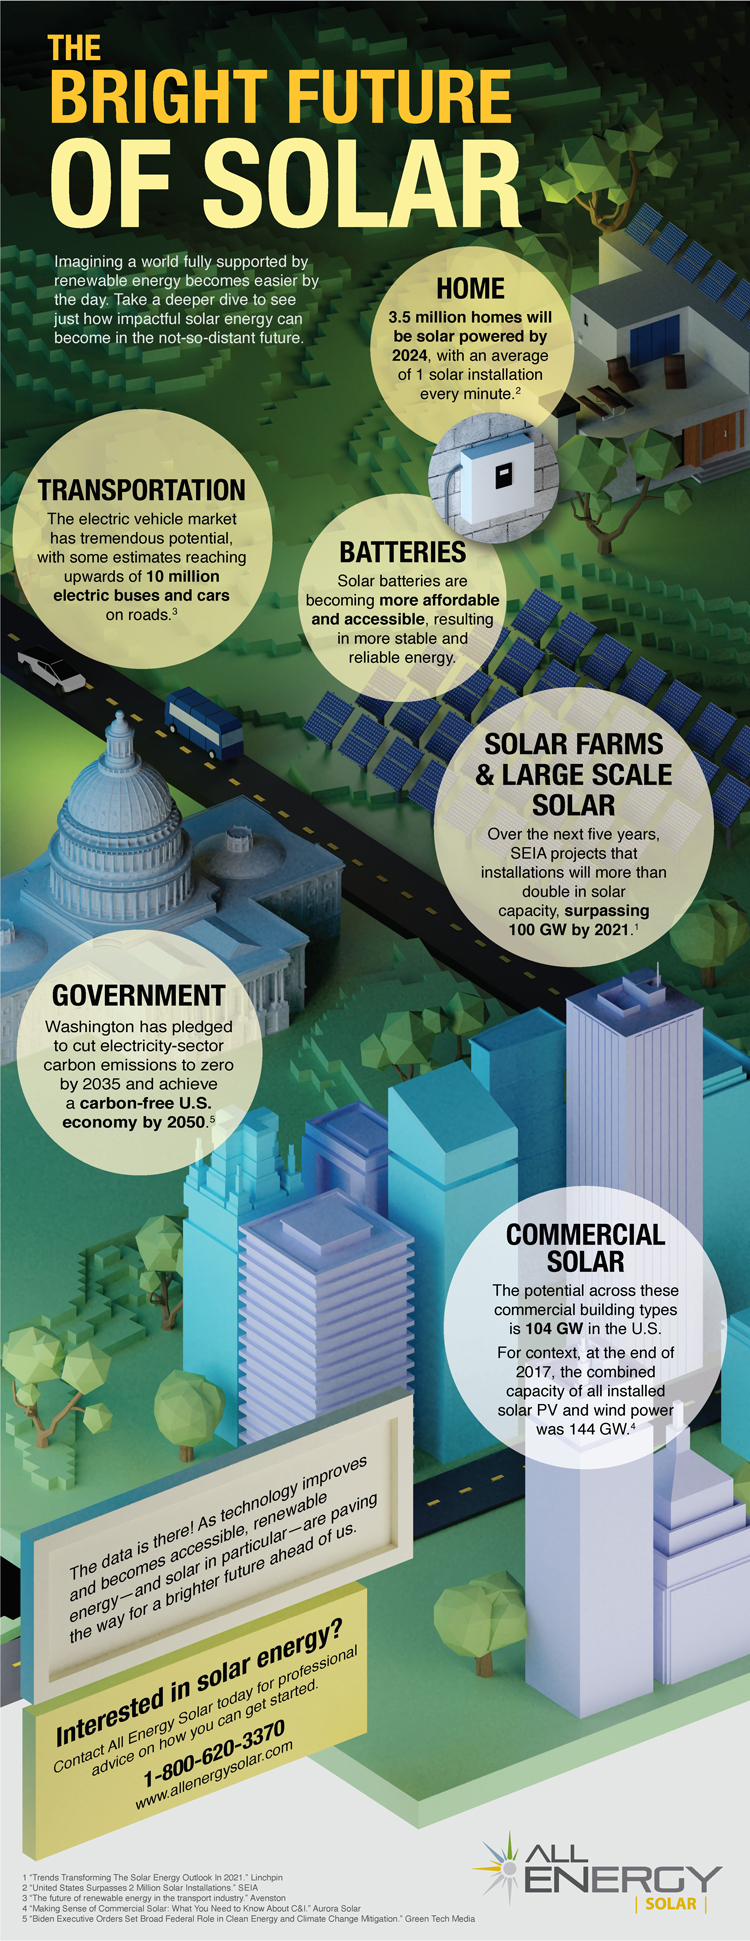 Infographic about the future of solar energy and the energy landscape